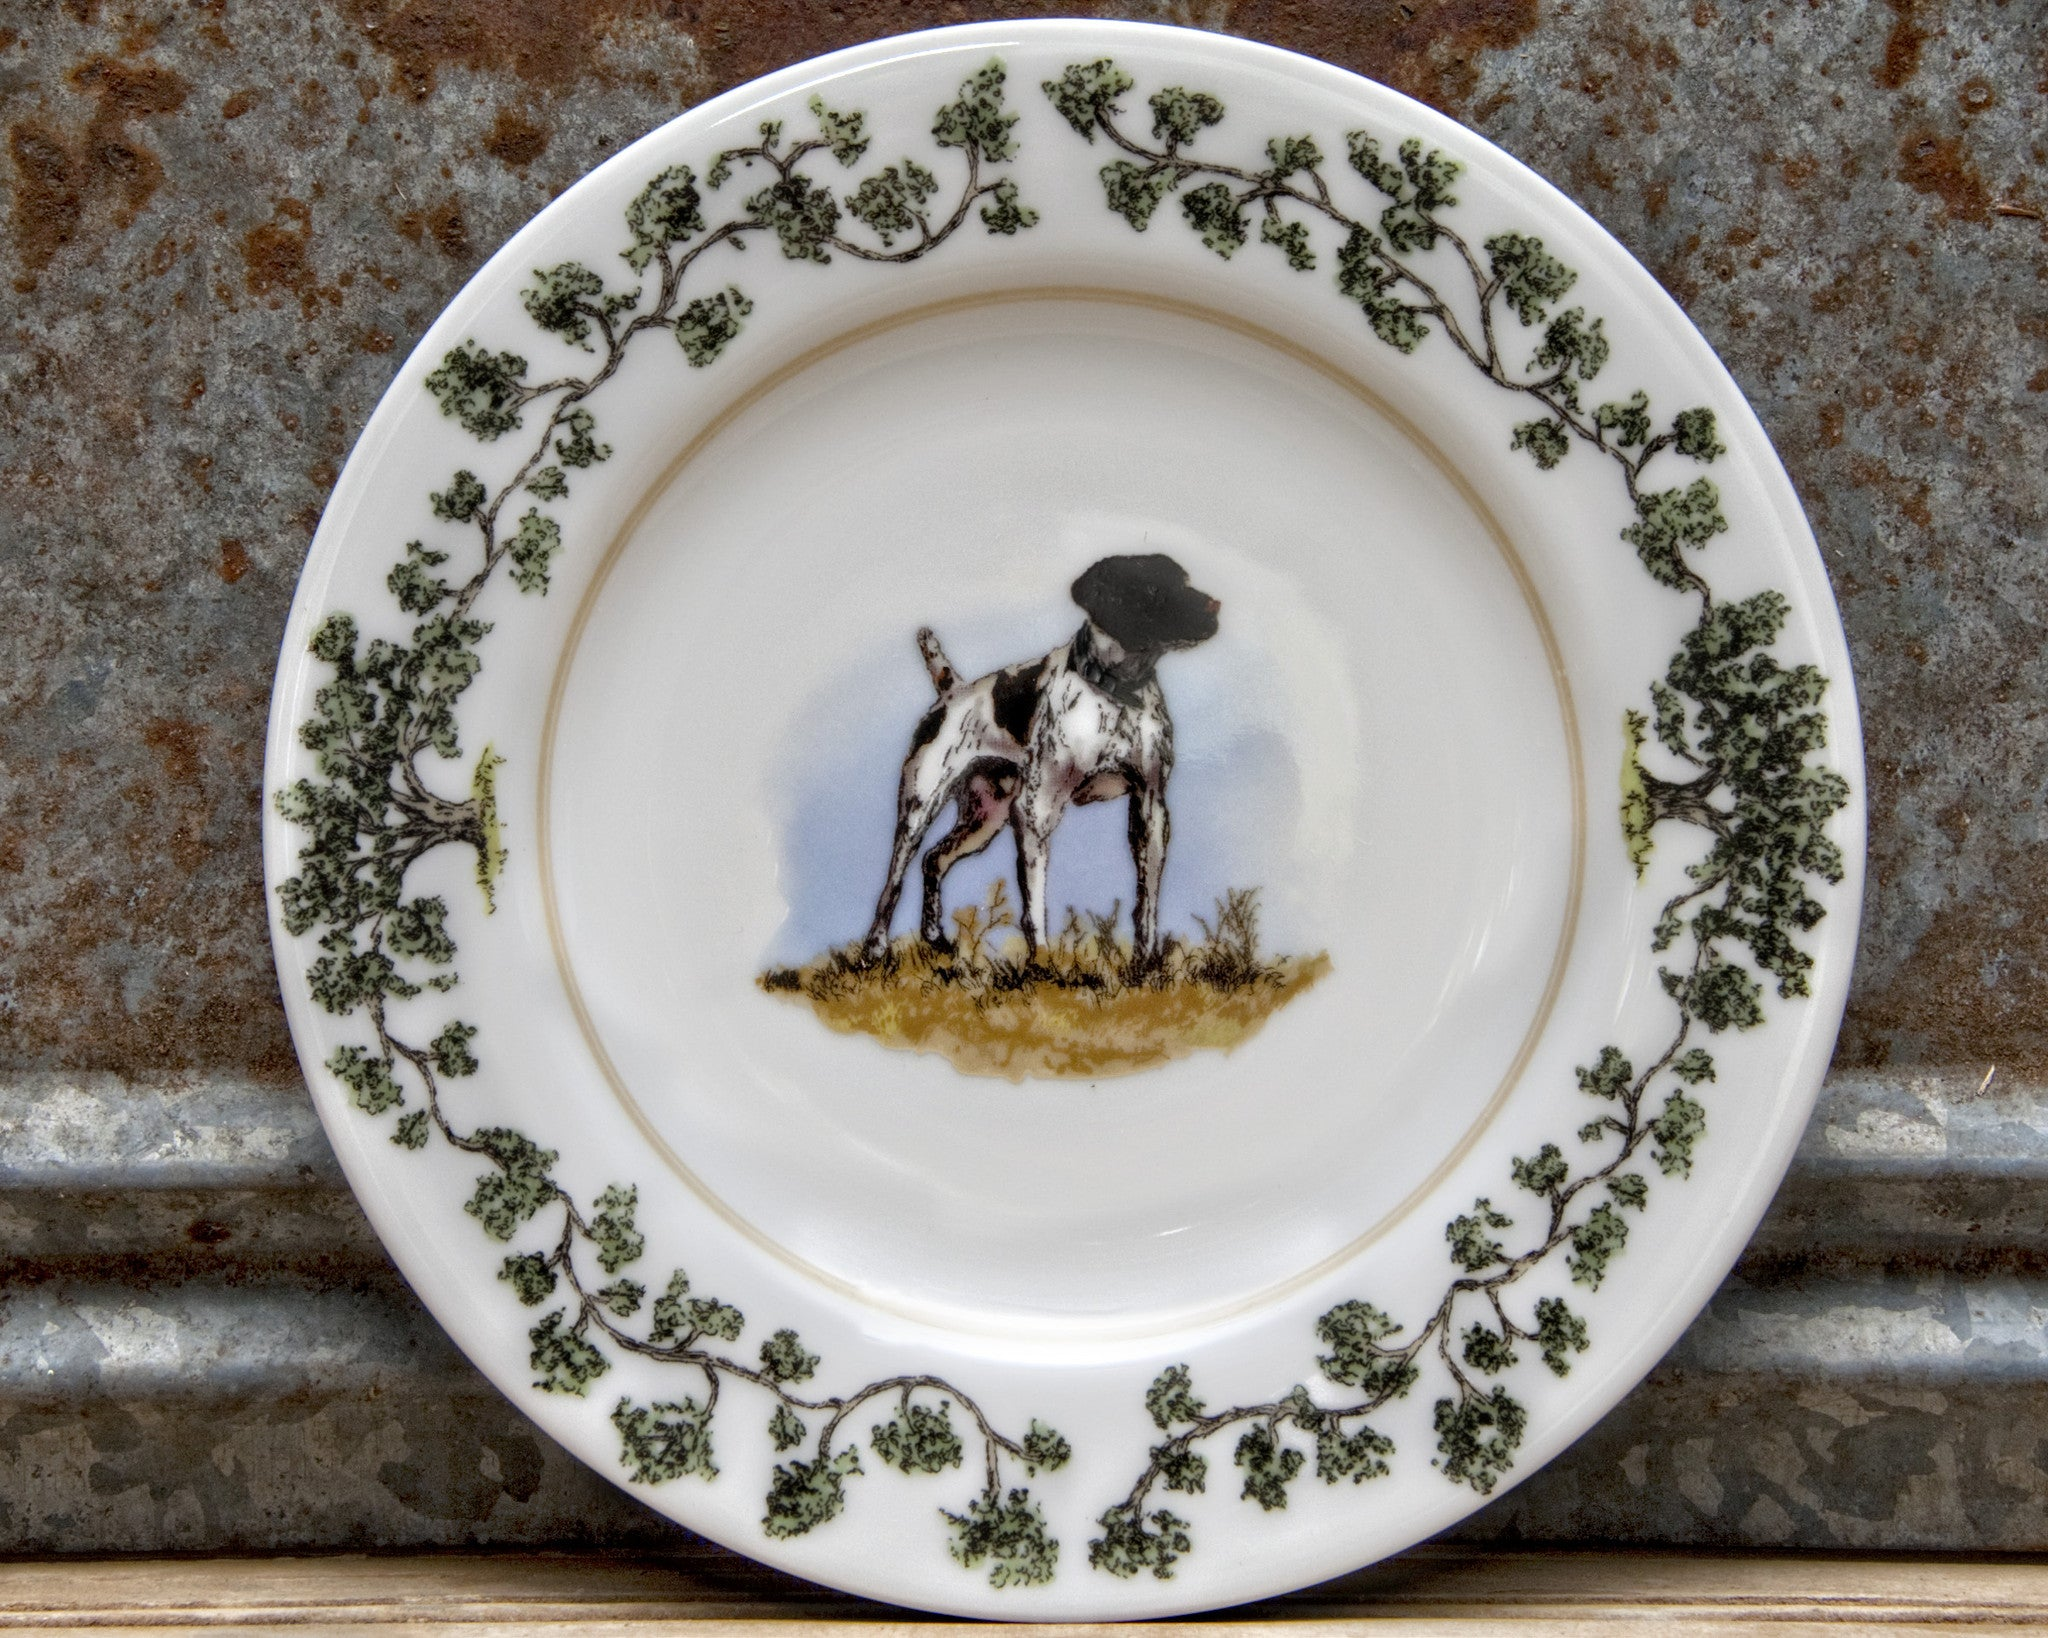 The Plantation China - Salad Plate German Shorthair